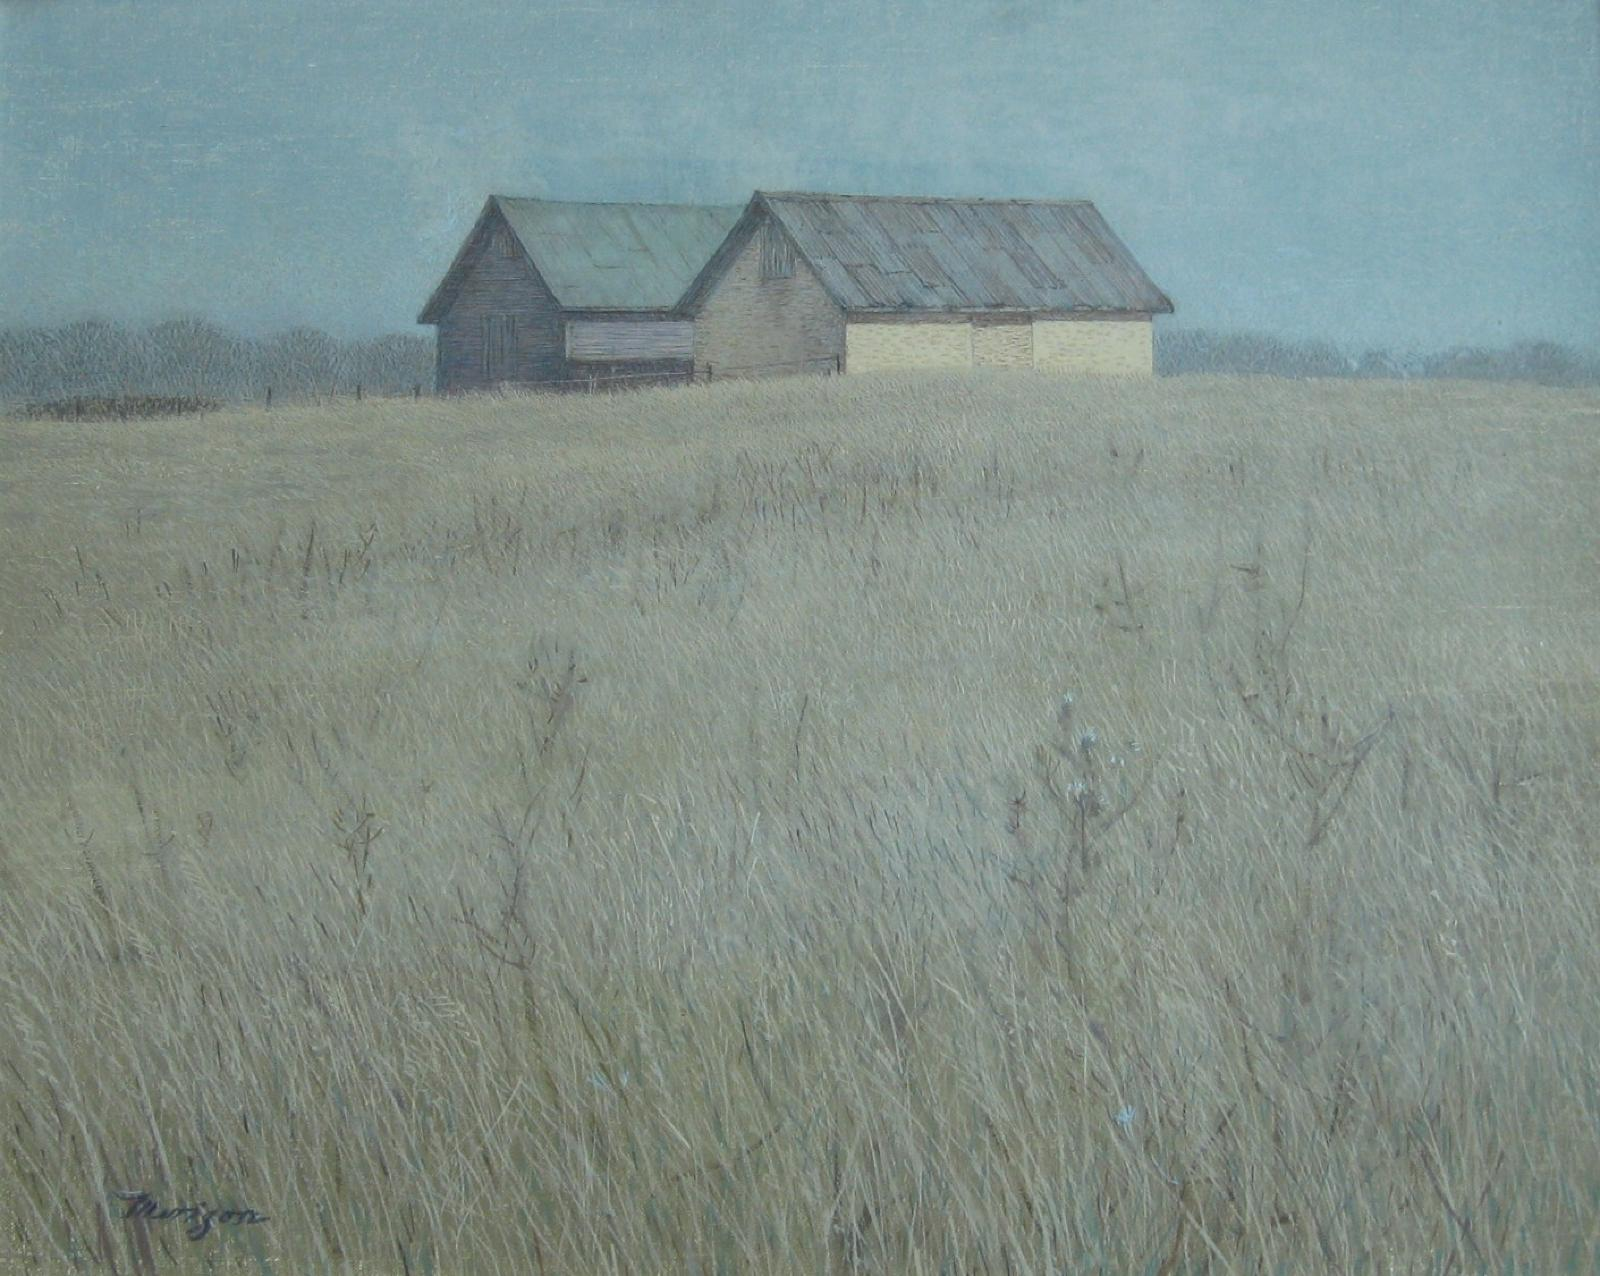 Acrylic painting of 2 barns in background, behind them is a blue sky, in front is a field.